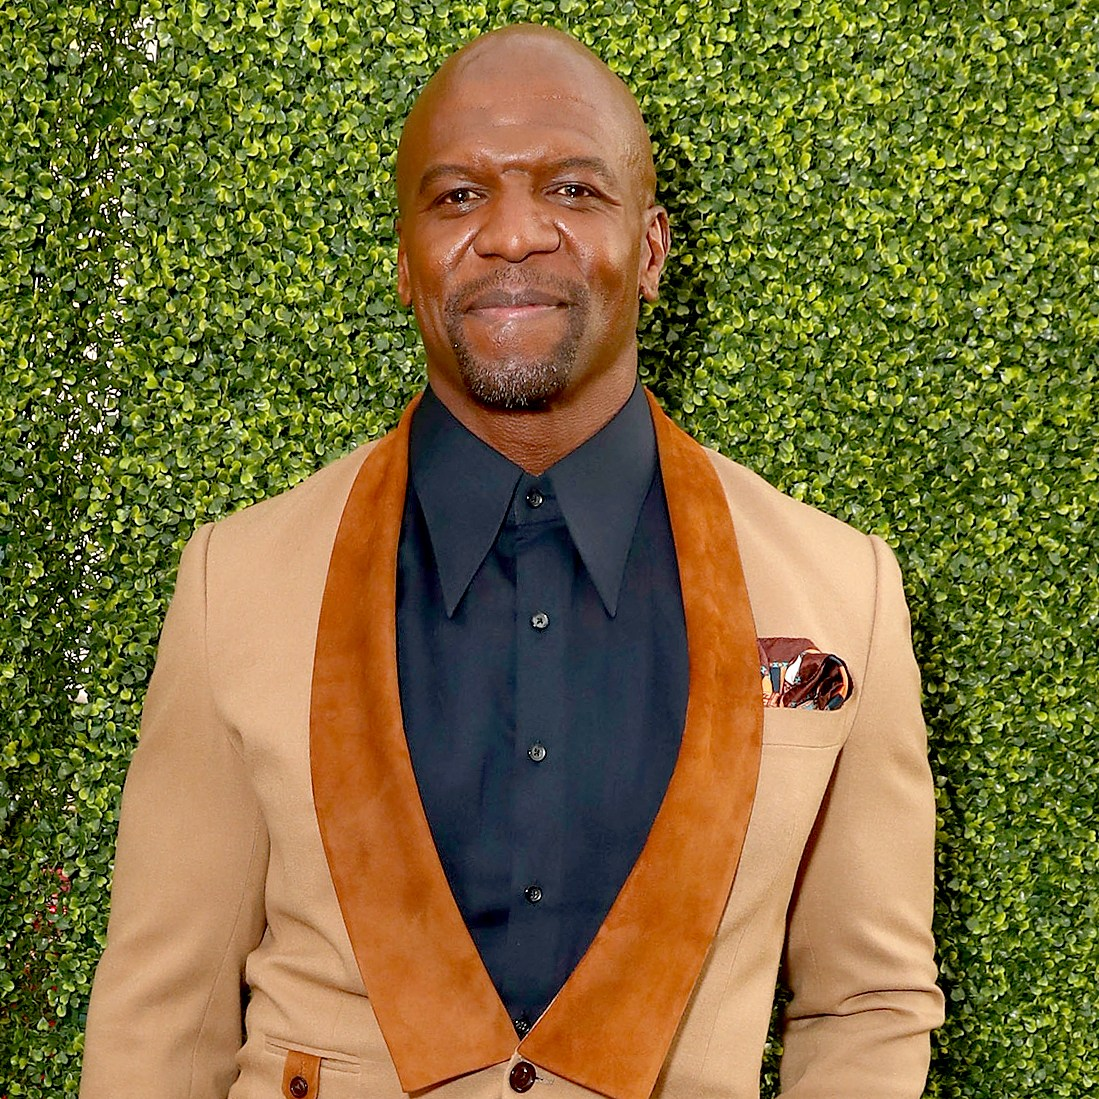 Terry Crews attends the FOX Fall Party at Catch LA on September 25, 2017 in West Hollywood, California.